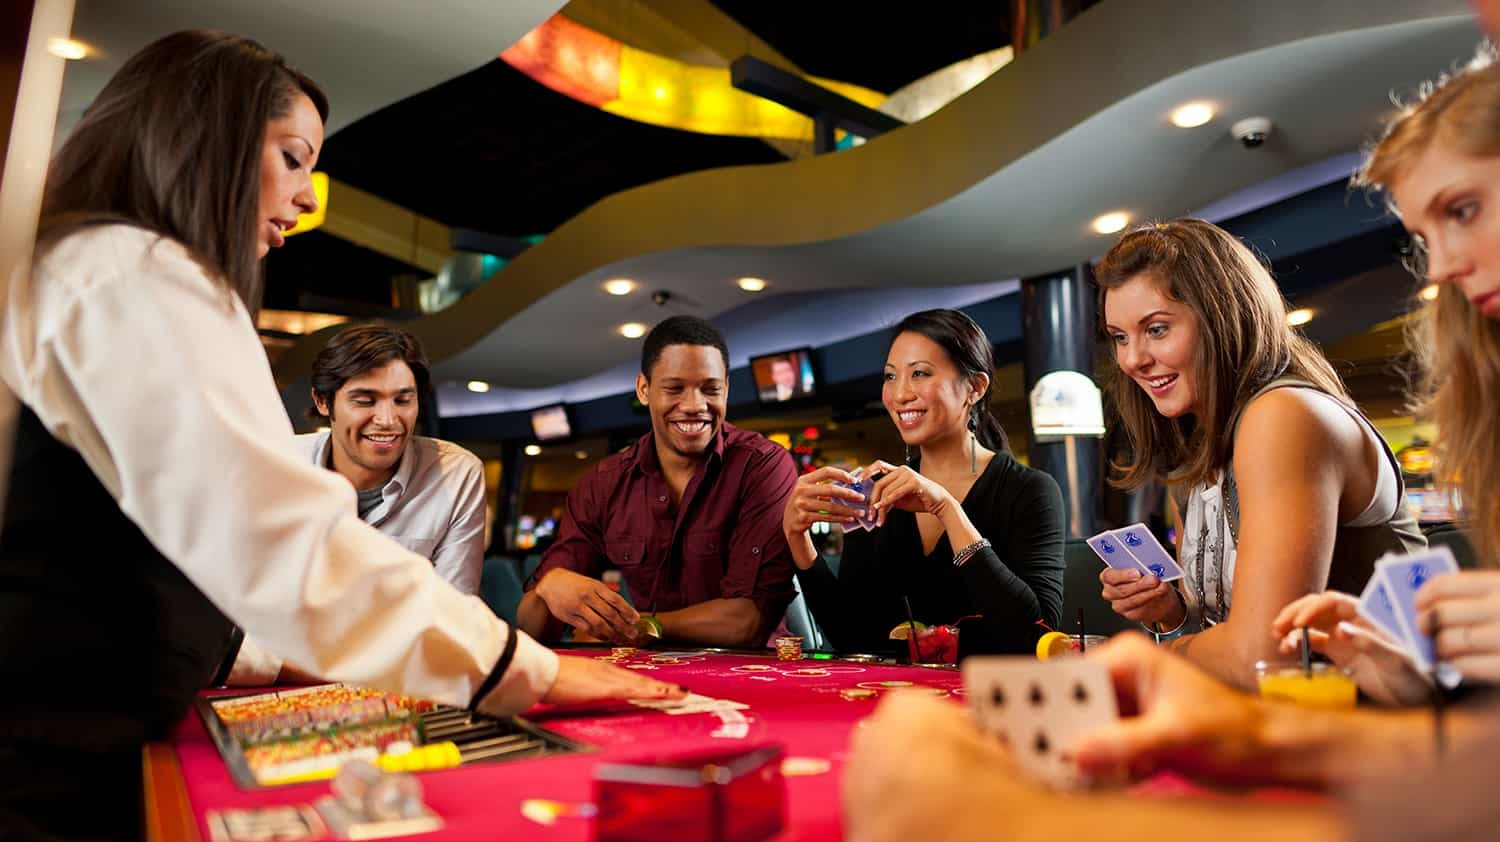 Riverwind casino poker reviews travel roulette game